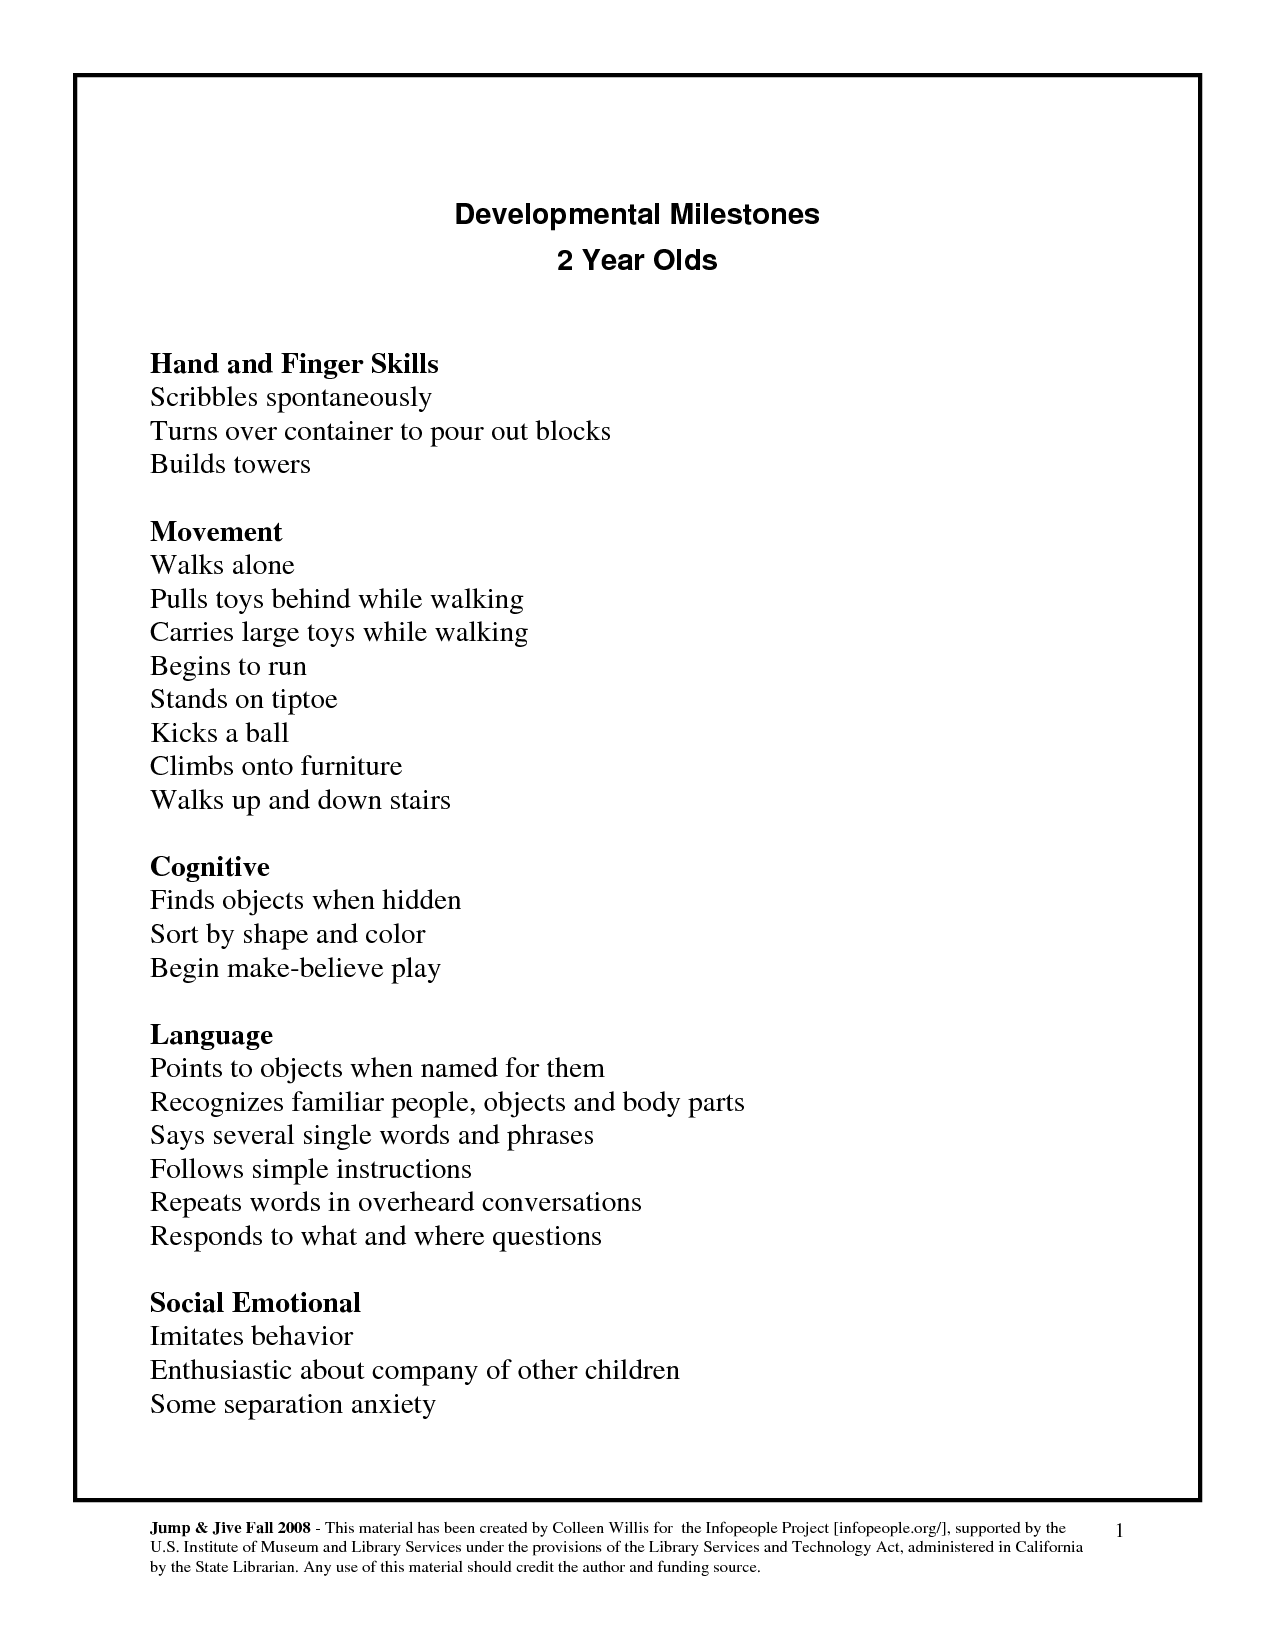 Developmental Milestones Checklist For 2 Year Olds With